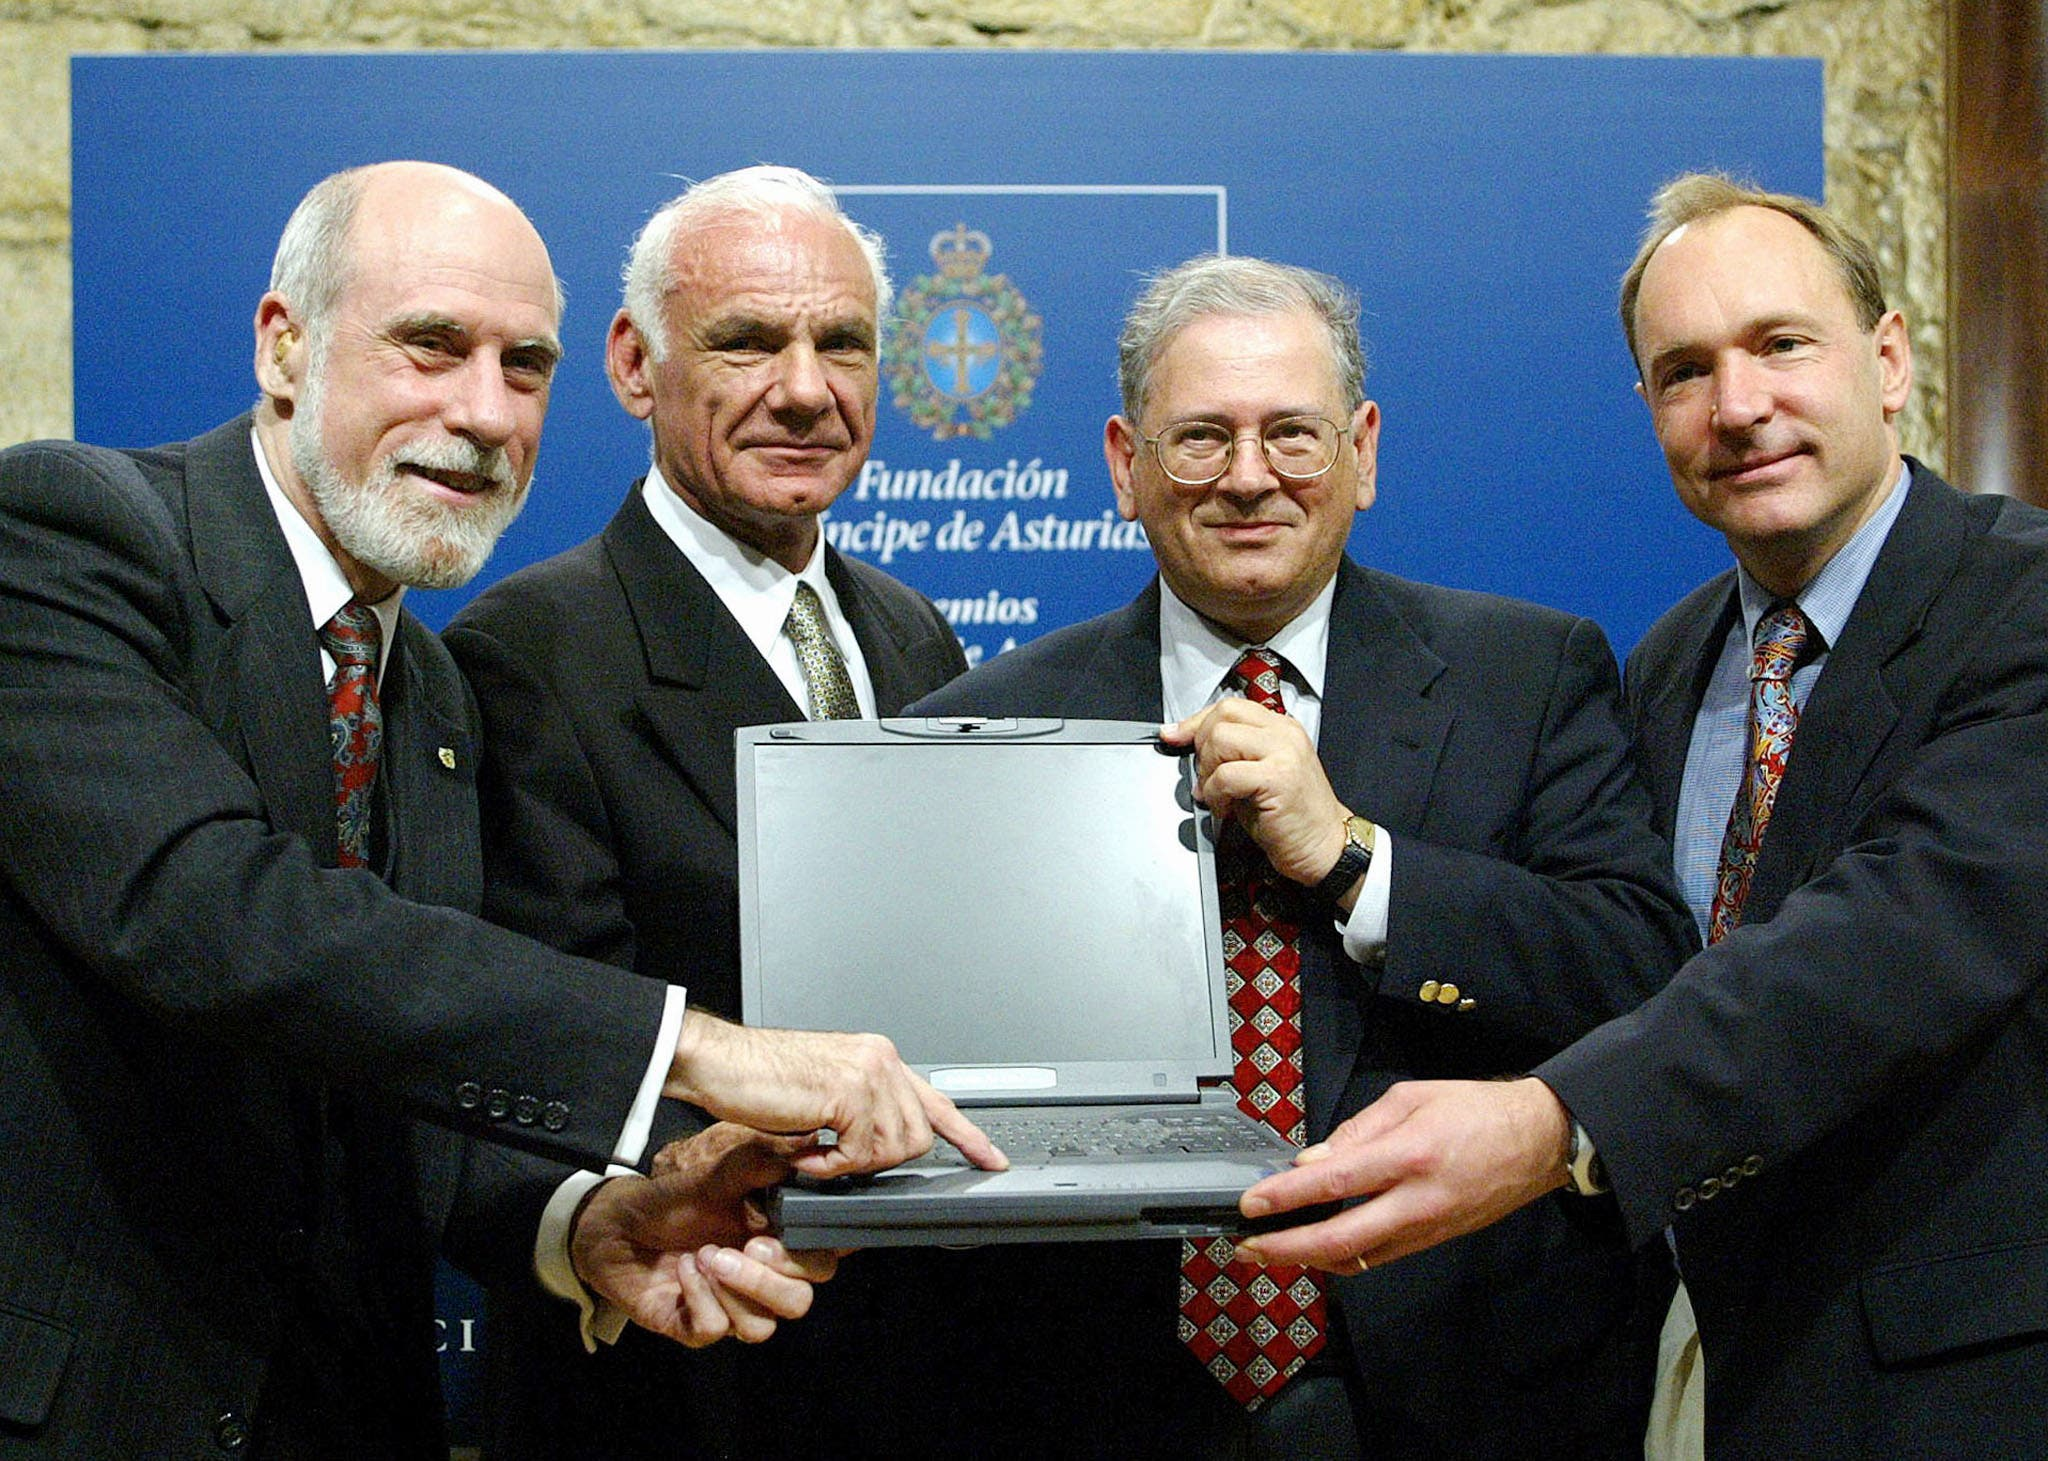 US's Vinton Cerfy (L), Lawrence Roberts (2nd L), Robert Kahn (2nd R) and British Tim Berners-Lee (R) pose for photographers after their joint news conference in Oviedo, northern Spain on October 24, 2002. (Reuters)